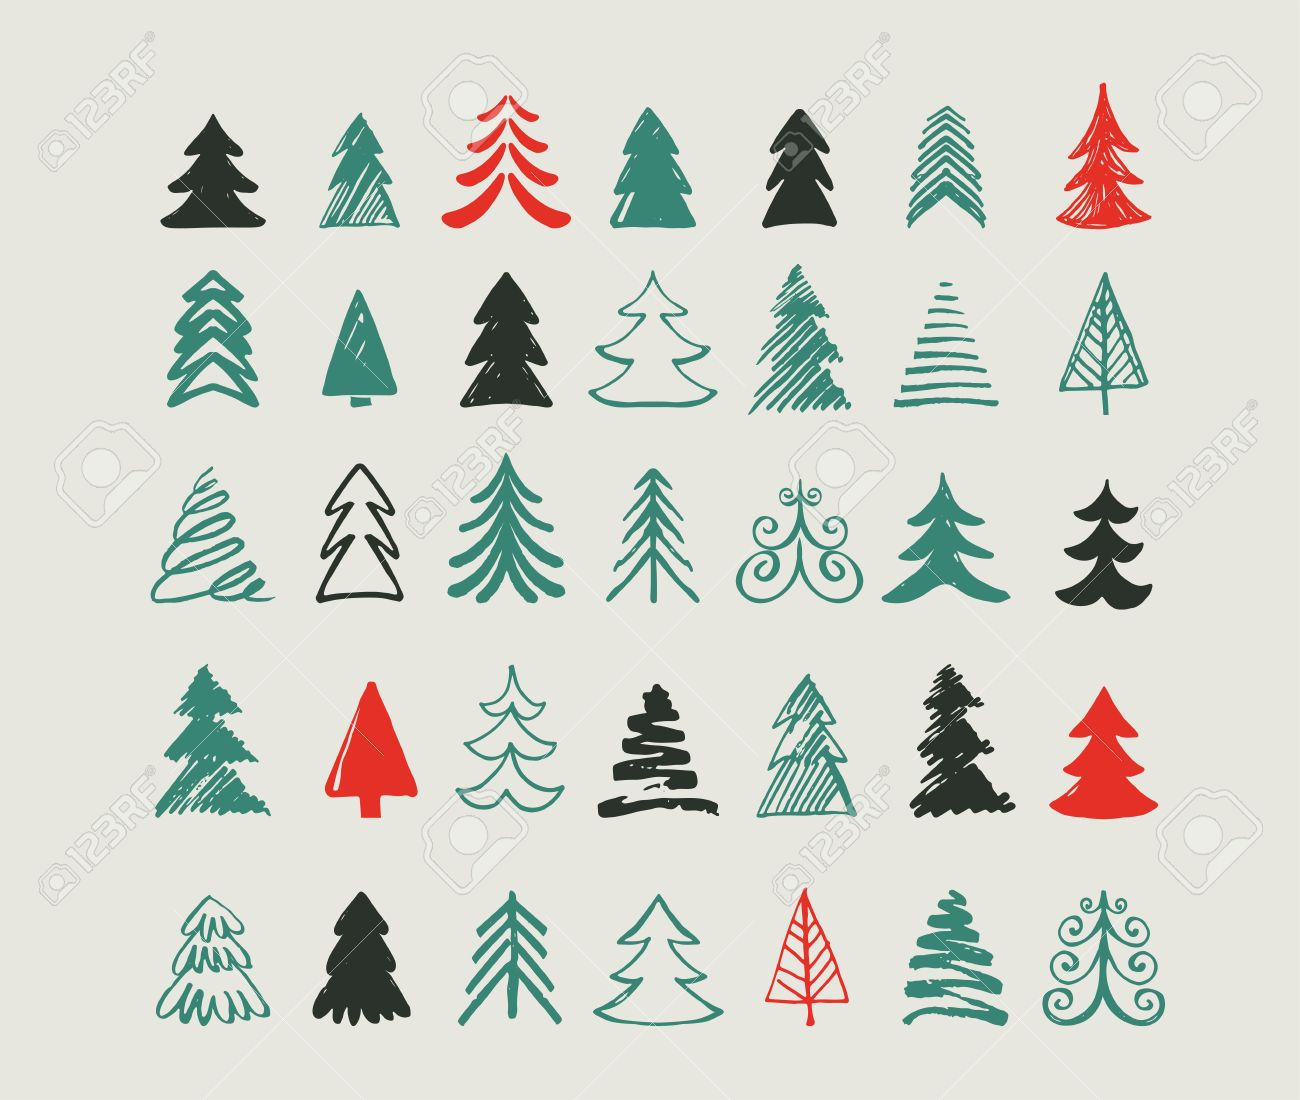 hand drawn christmas tree icons doodles and sketches royalty free cliparts vectors and stock illustration image 45361982 hand drawn christmas tree icons doodles and sketches royalty free cliparts vectors and stock illustration image 45361982